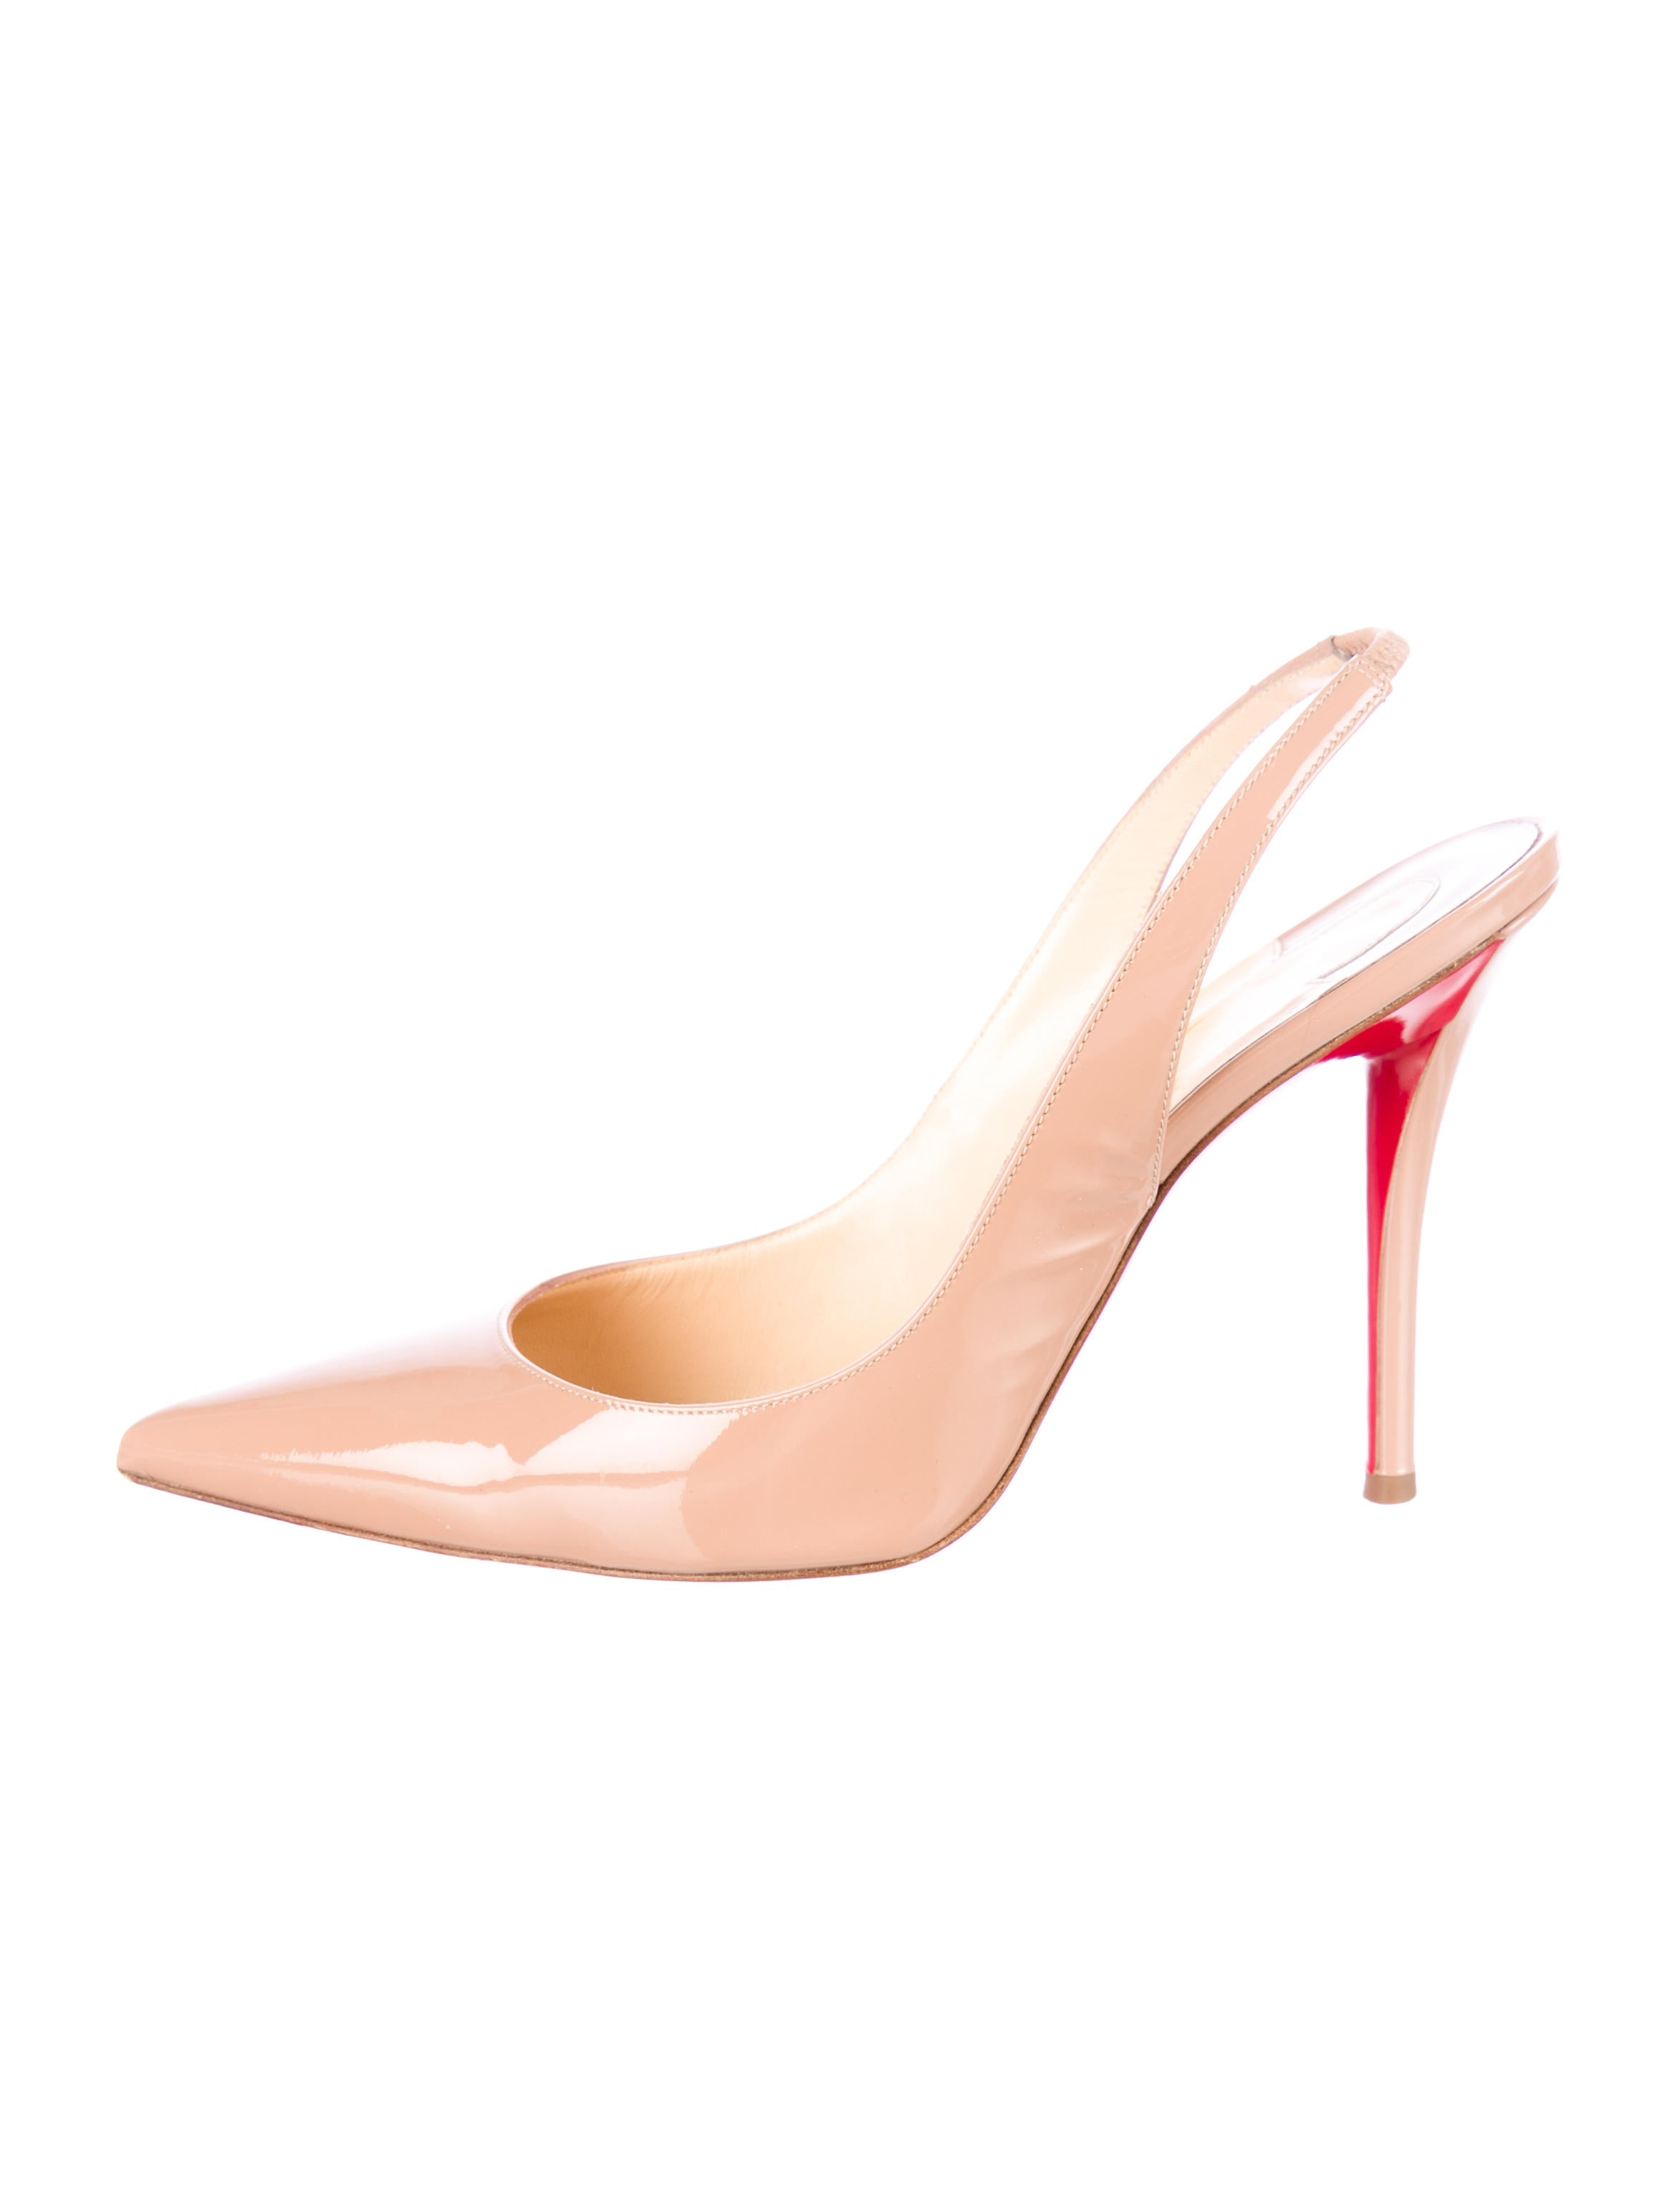 Christian Louboutin Apostrophy Pumps - Shoes - CHT36254 | The RealReal